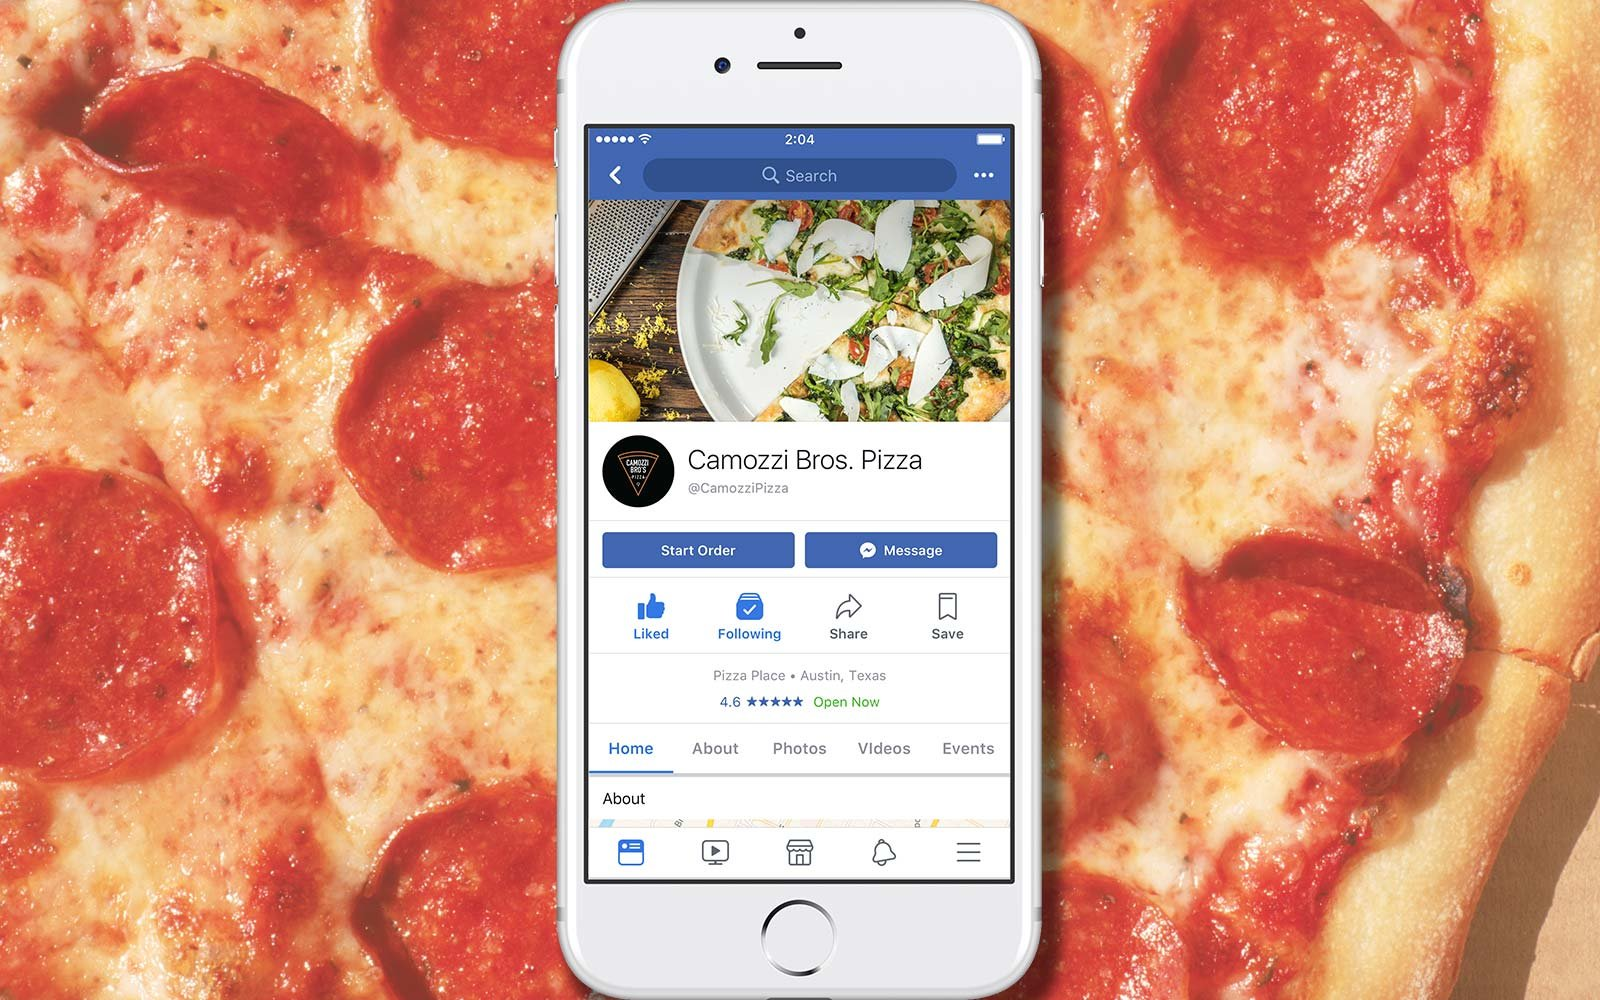 Facebook is hungry for more data, so it's letting you order food